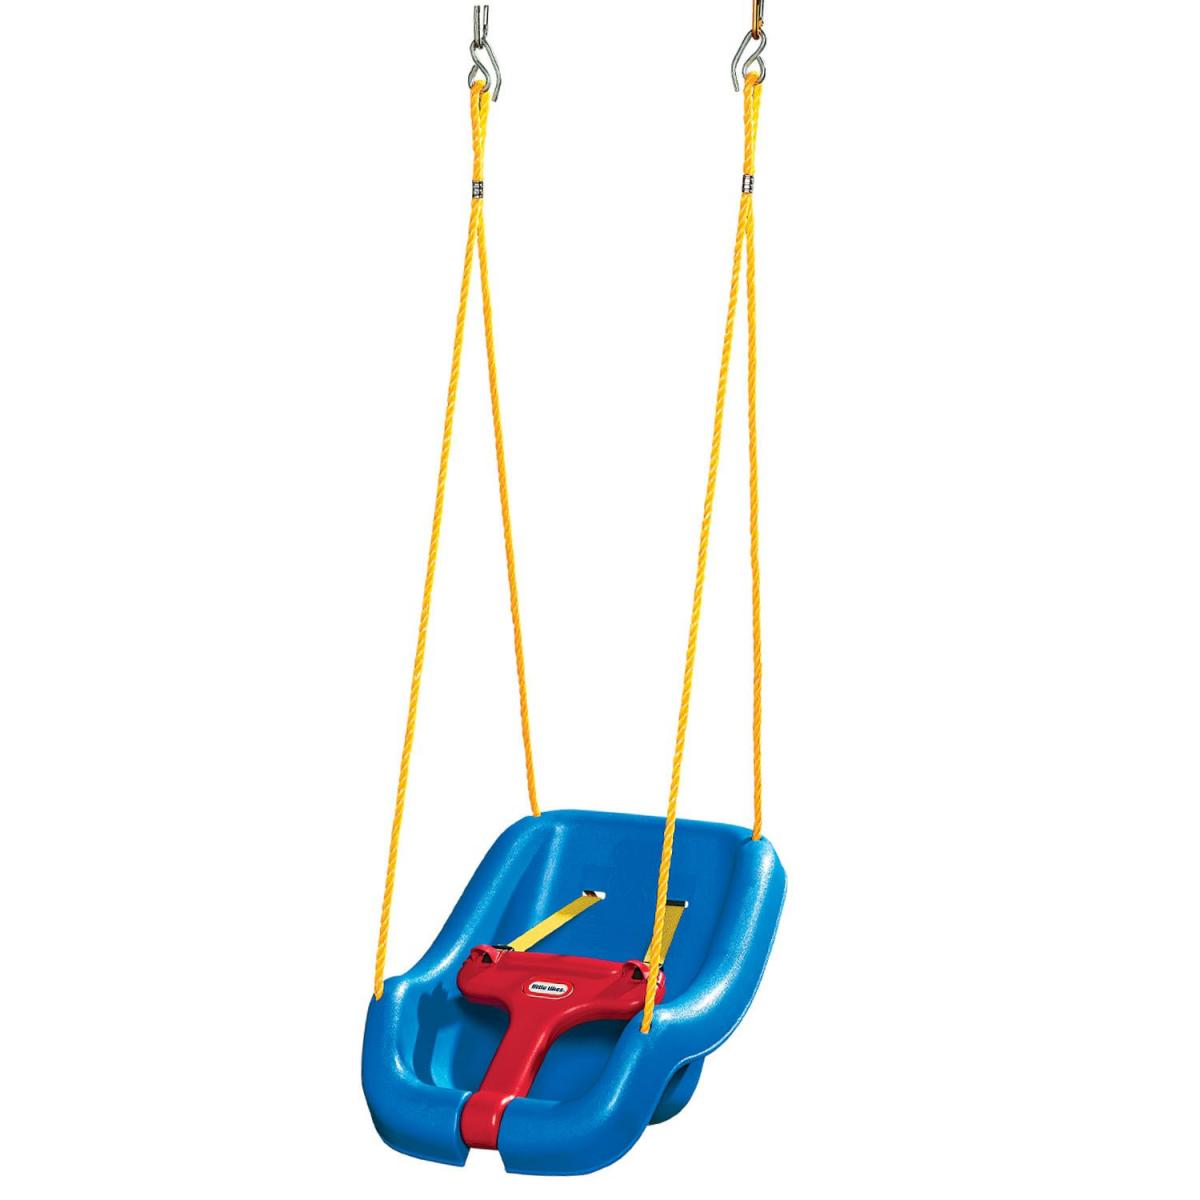 Little Tikes 2-in-1 Snug N' Secure Outdoor Swing